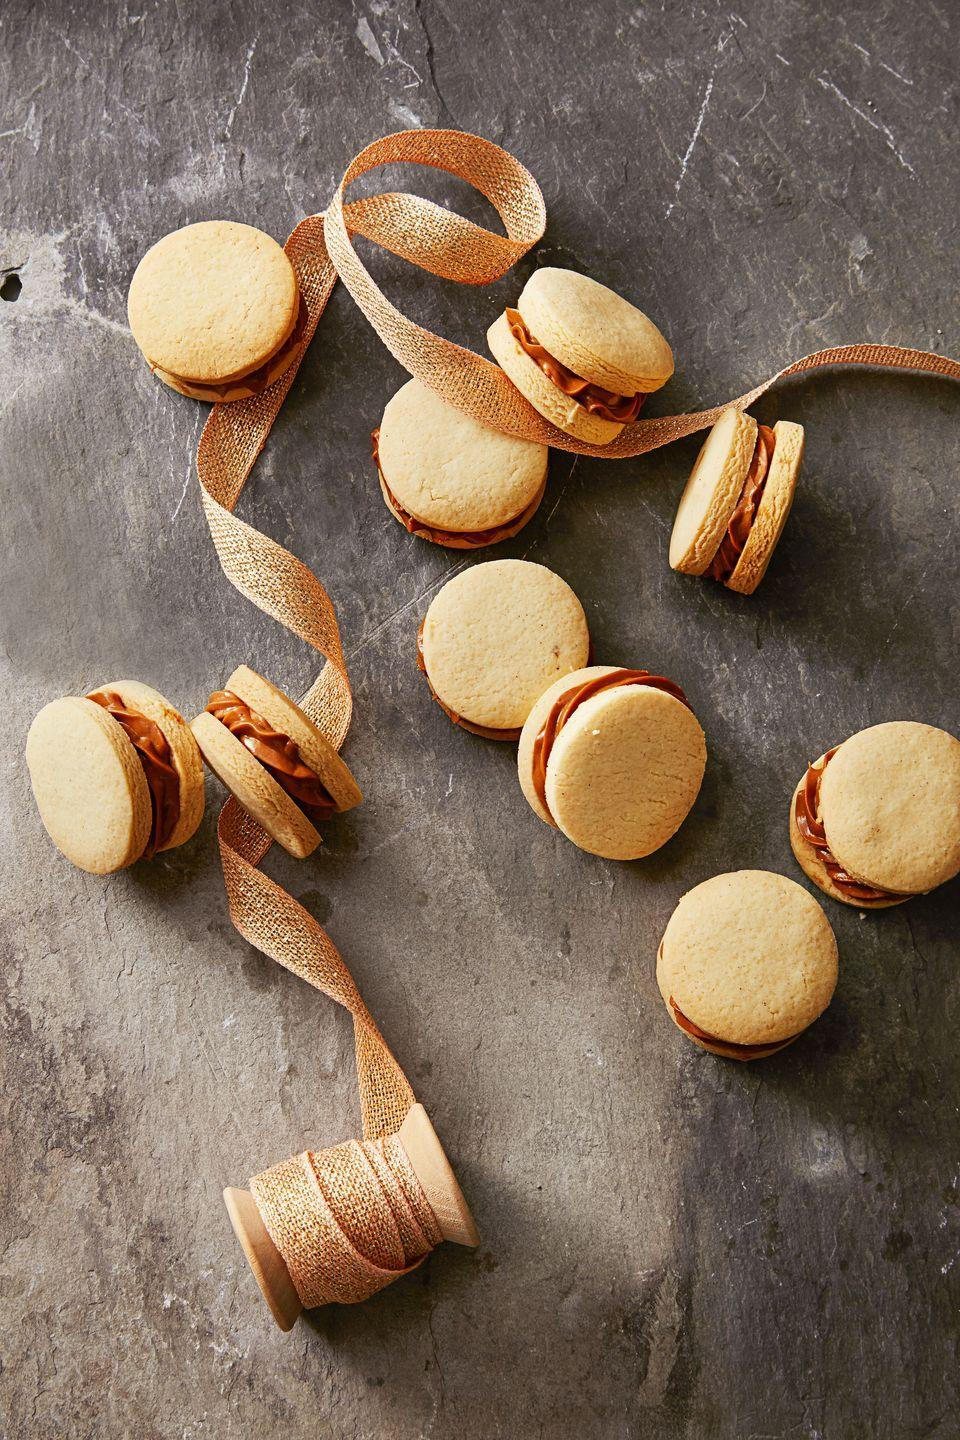 "<p>Dulce de leche is like caramel made from sweetened milk, so it's pretty much perfect on its own. Sandwich it between two buttery cookies and presto! You won the cookie swap.</p><p><em><a href=""https://www.goodhousekeeping.com/food-recipes/dessert/a35757/dulce-de-leche-sandwiches/"" rel=""nofollow noopener"" target=""_blank"" data-ylk=""slk:Get the recipe for Dulce de Leche Sandwiches »"" class=""link rapid-noclick-resp"">Get the recipe for Dulce de Leche Sandwiches »</a></em></p>"